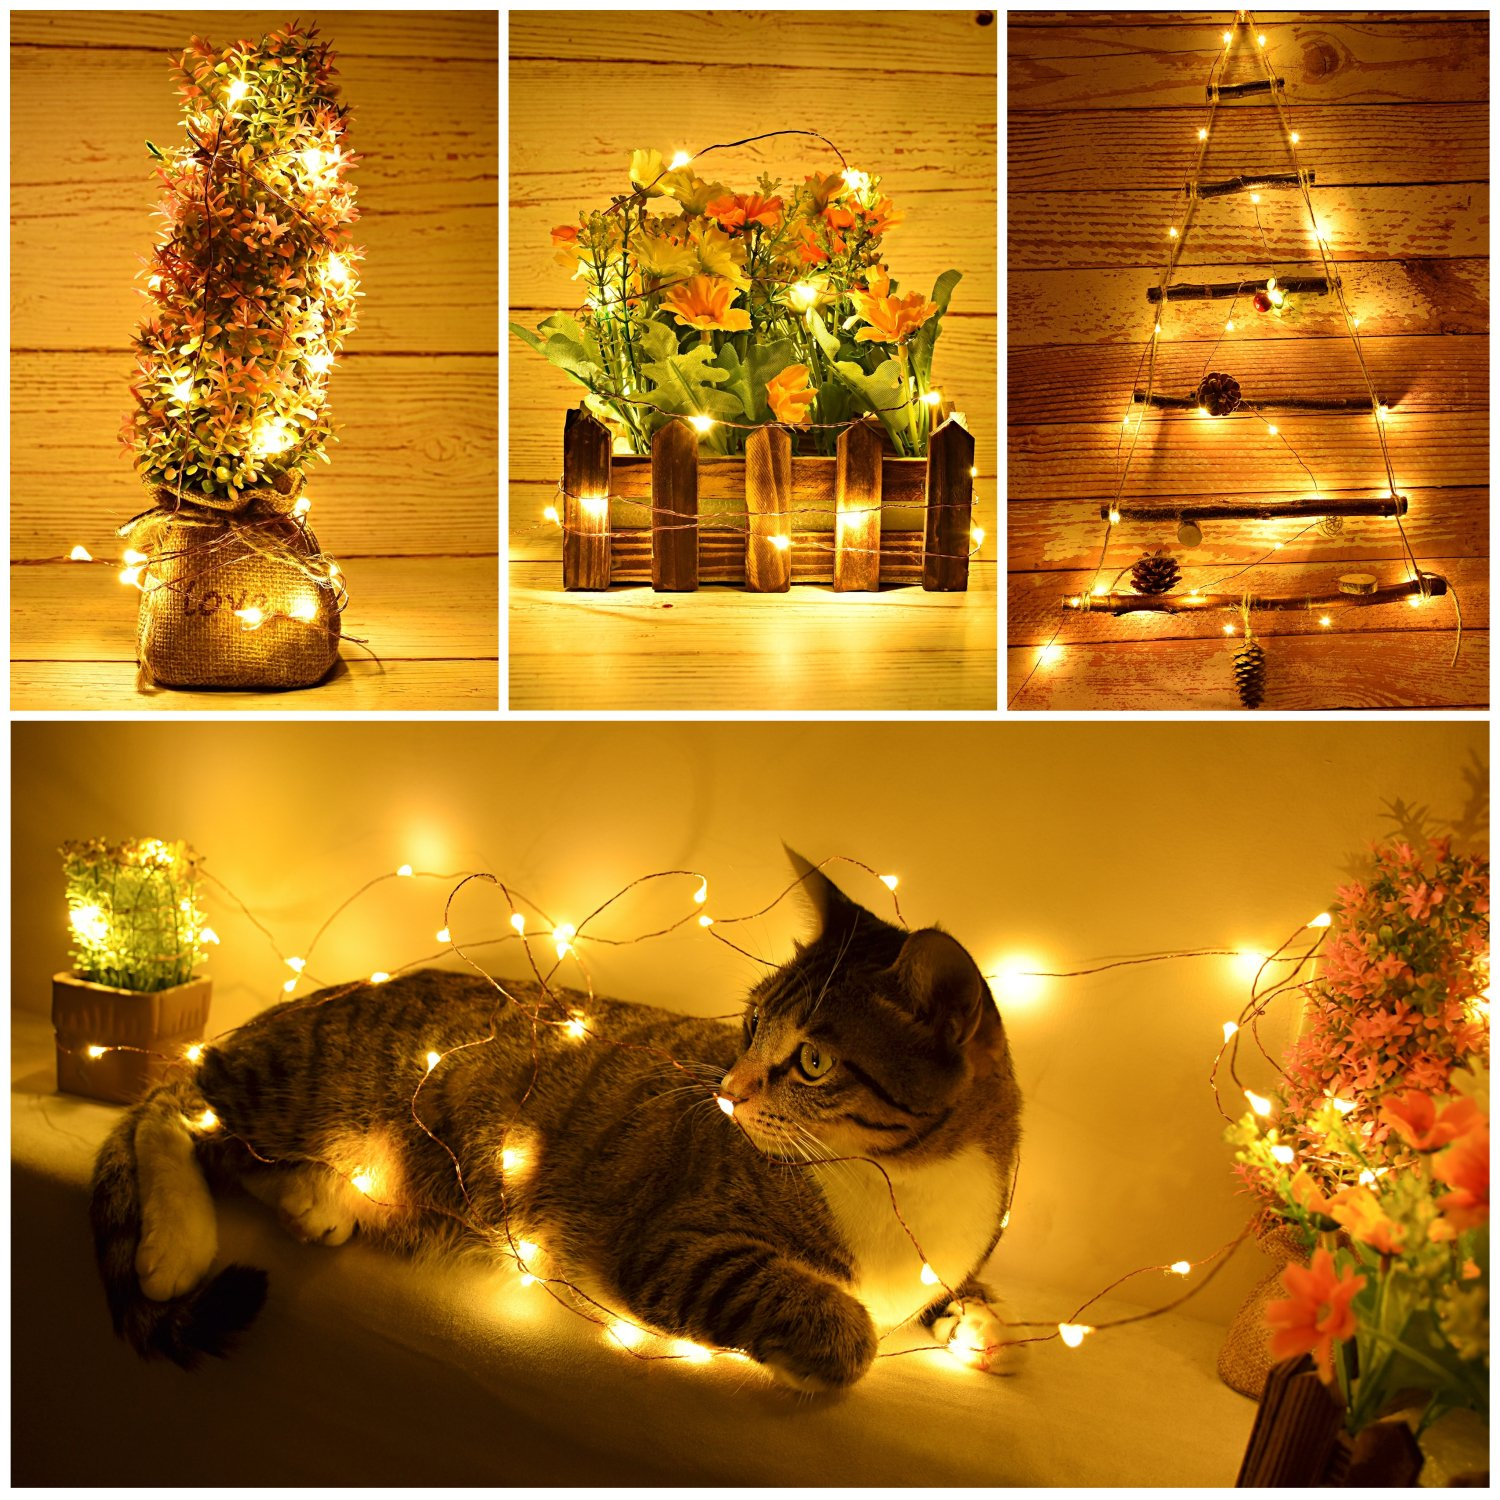 Amazon LED String Lights with remote control Dimmable and